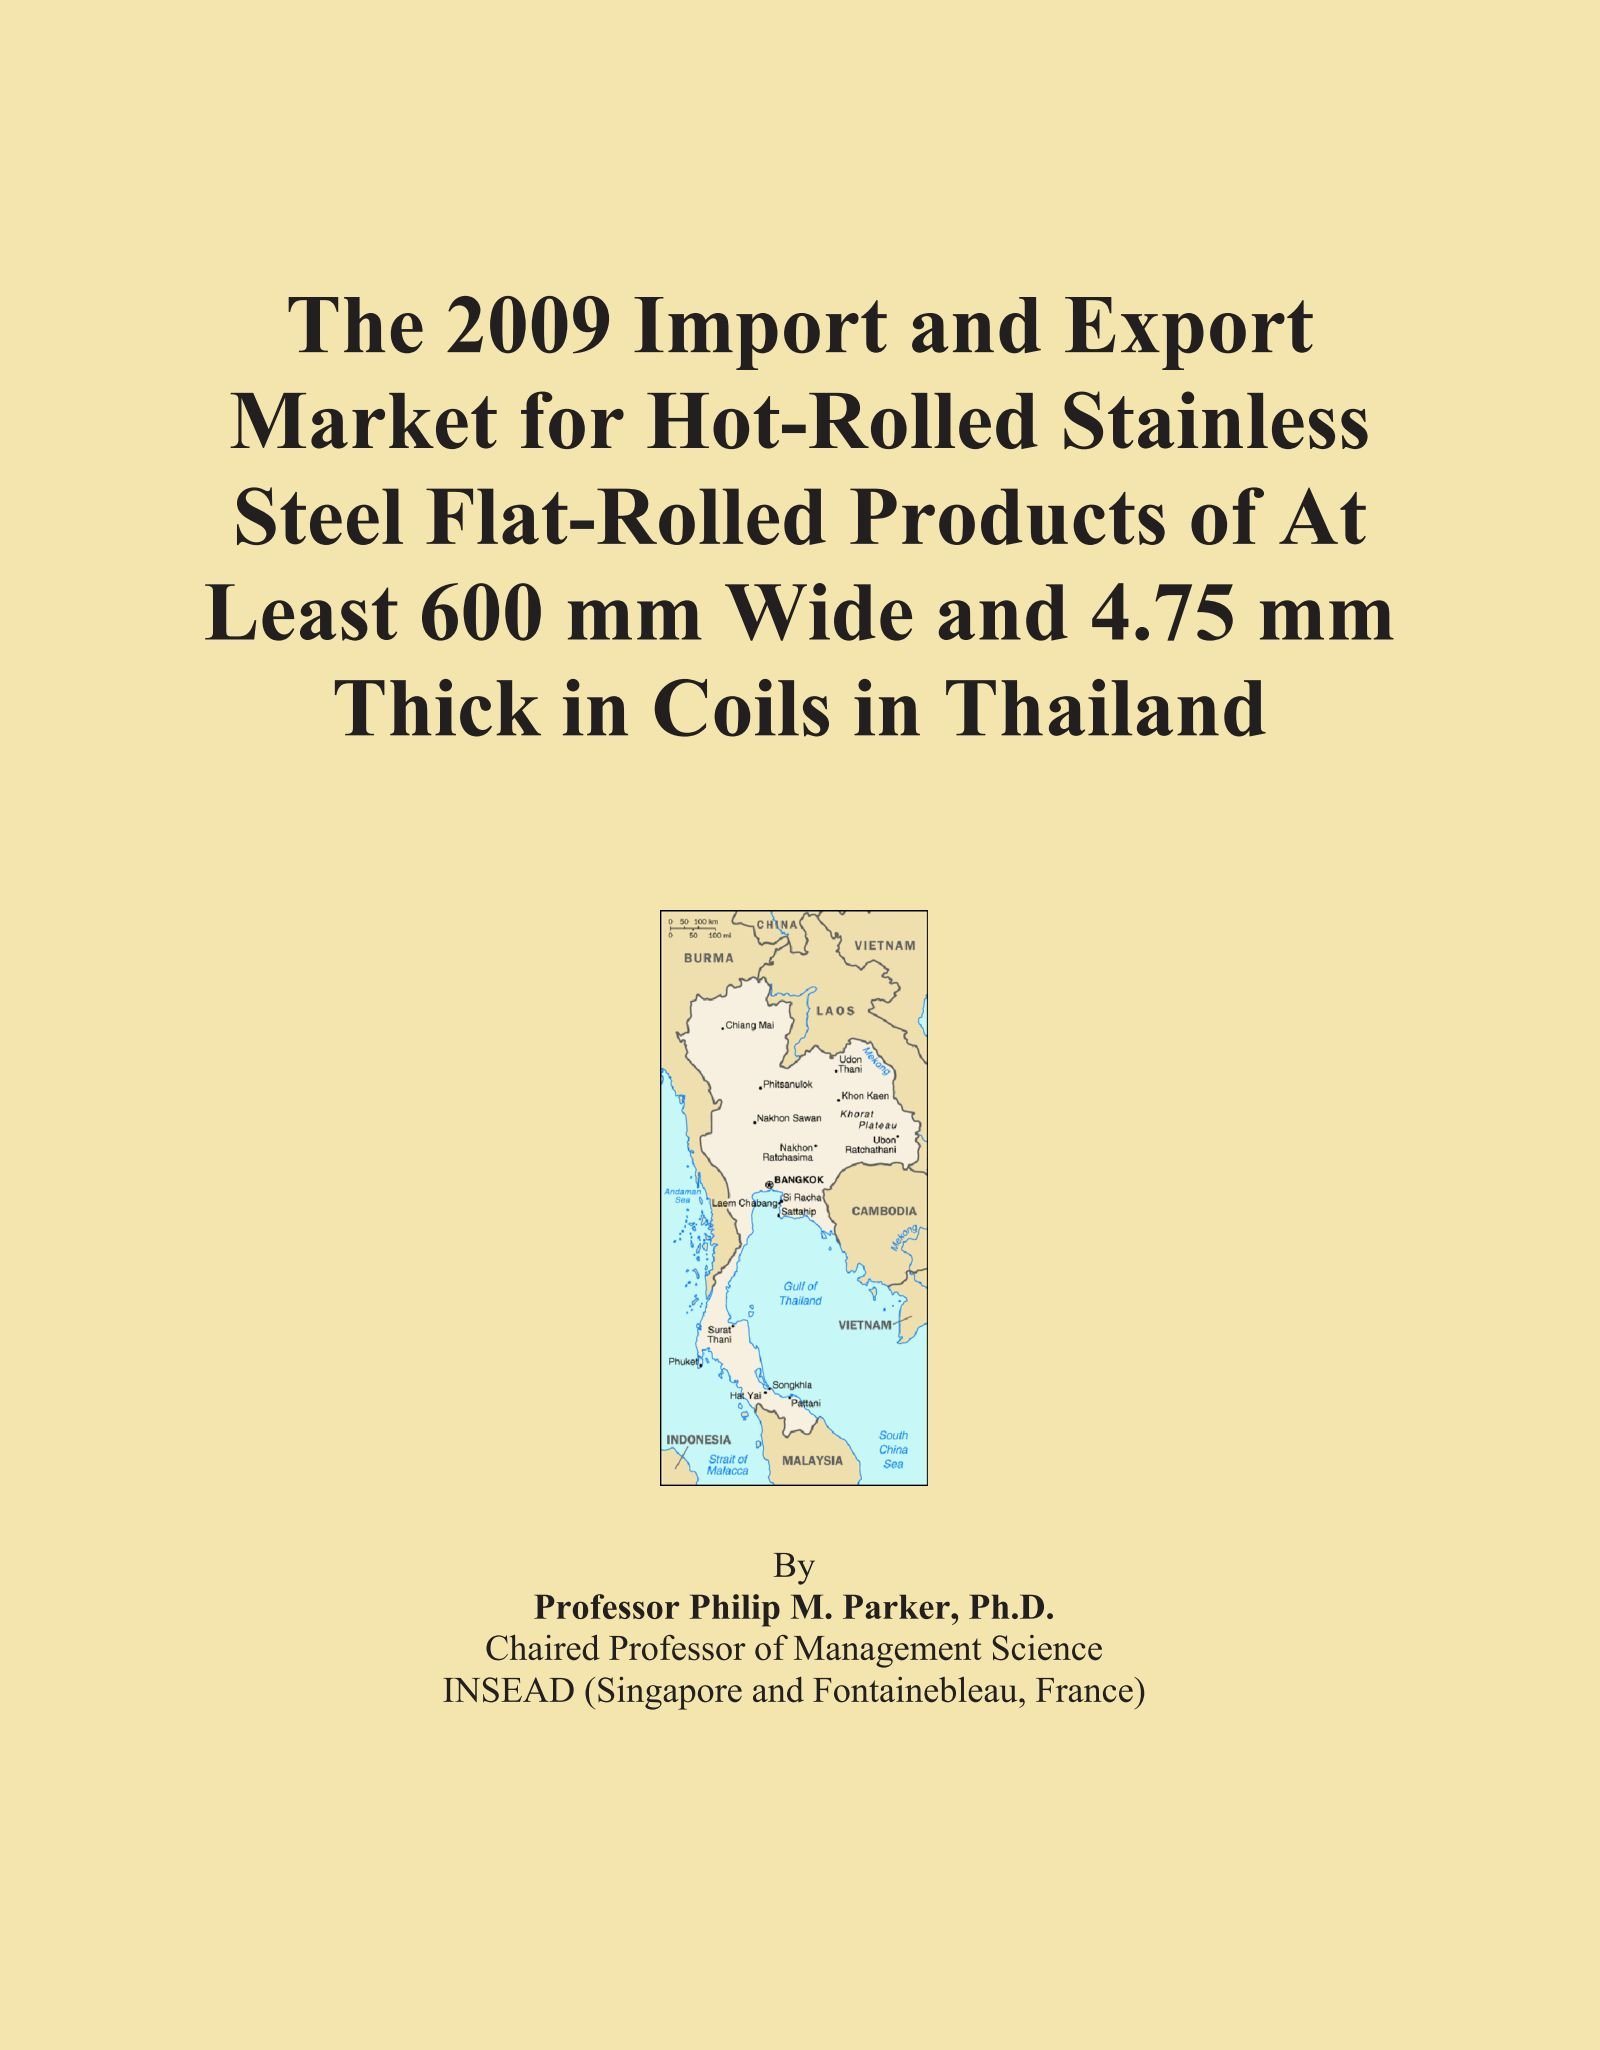 Download The 2009 Import and Export Market for Hot-Rolled Stainless Steel Flat-Rolled Products of At Least 600 mm Wide and 4.75 mm Thick in Coils in Thailand pdf